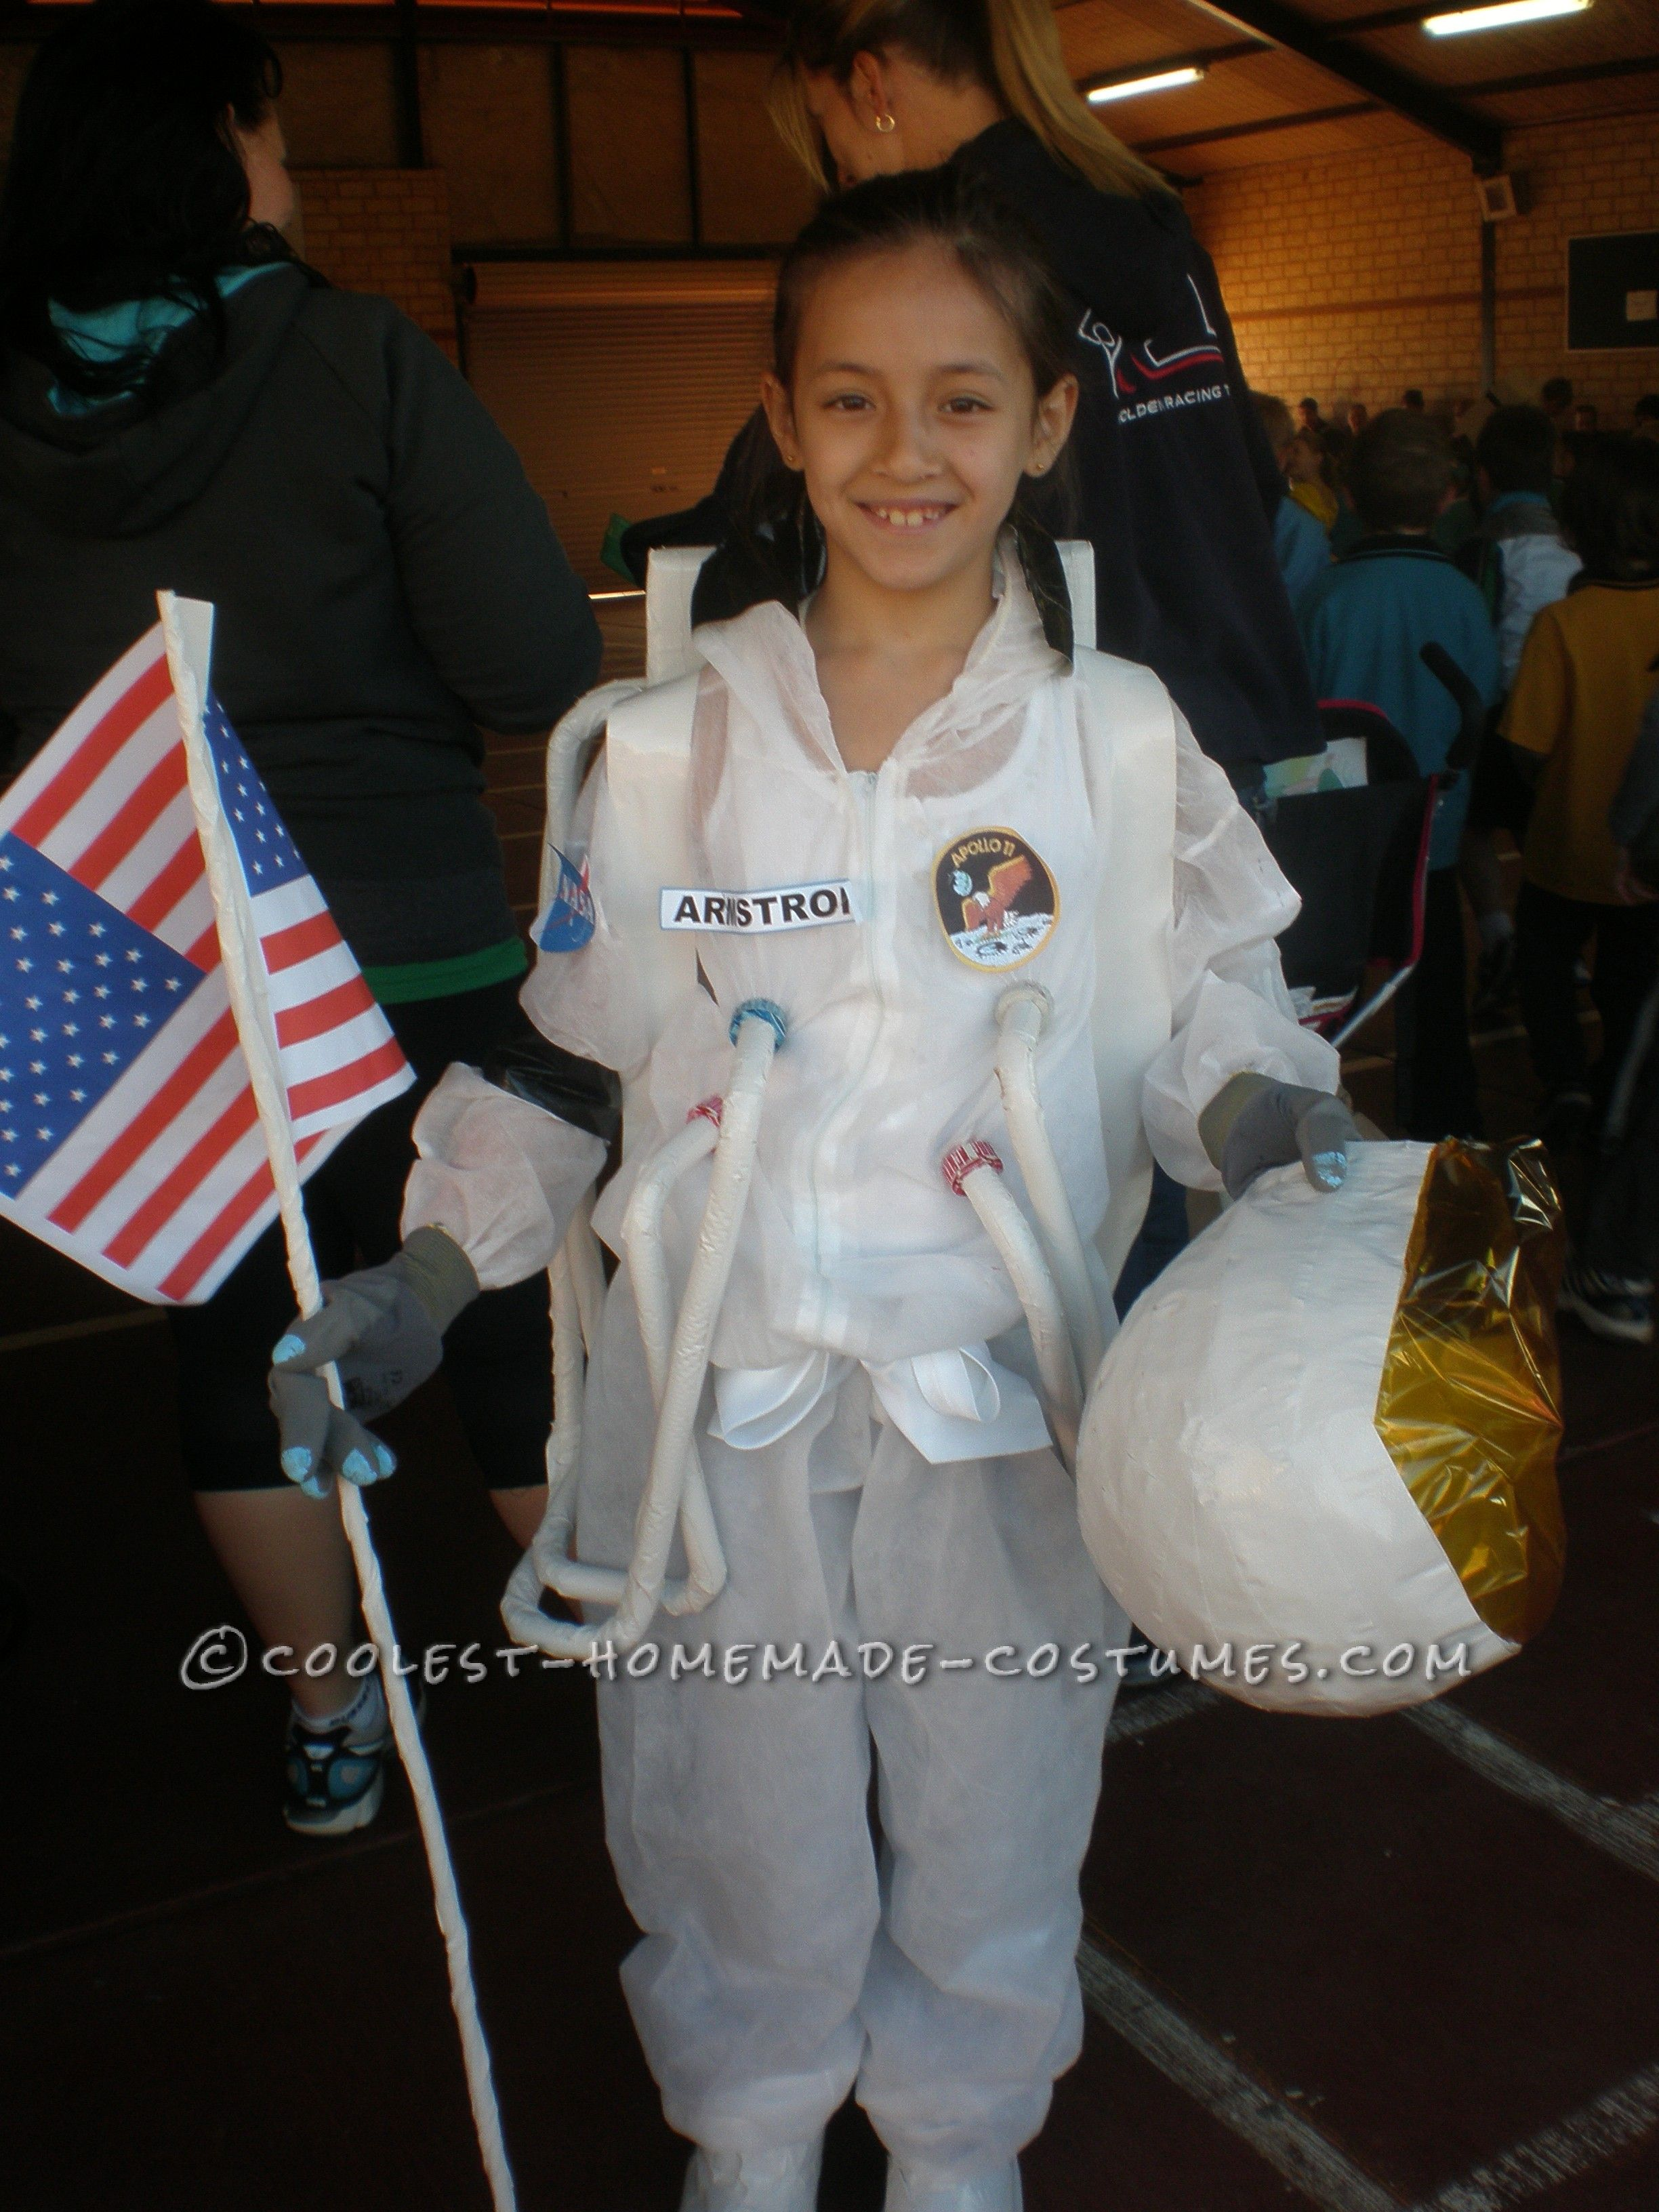 Homemade Astronaut Costume in Honor of Neil Armstrong ...